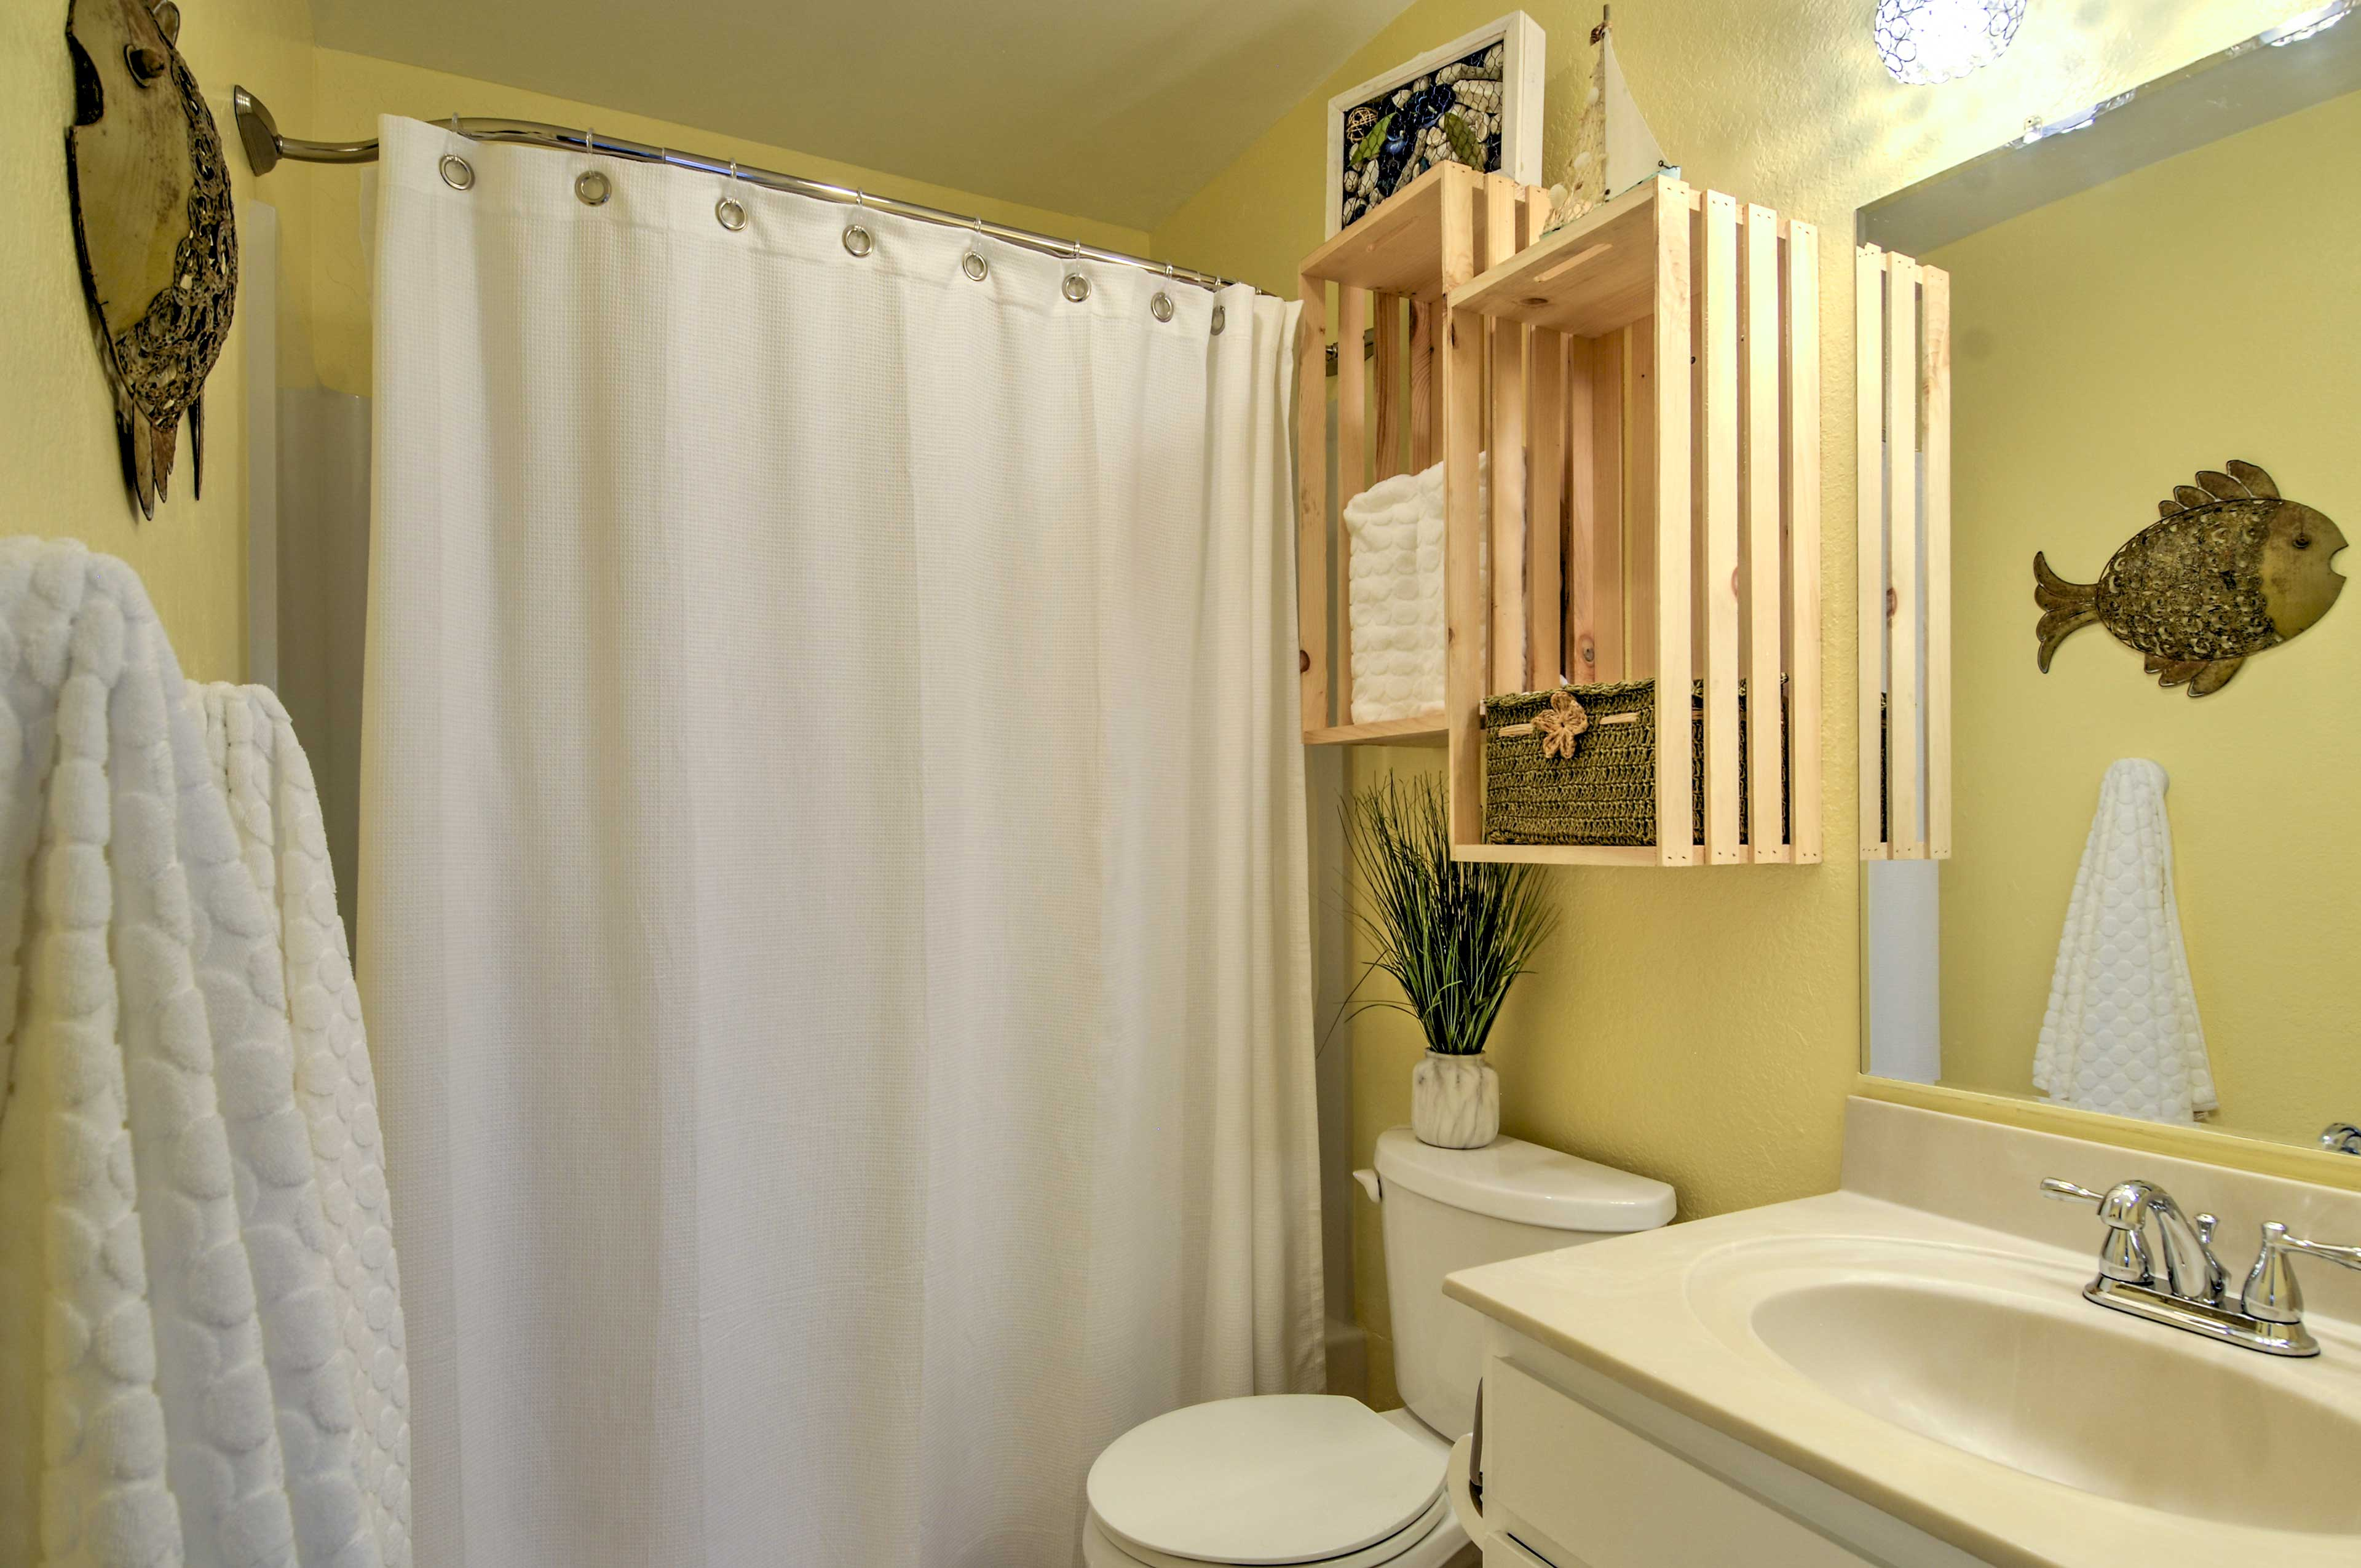 Refresh in the pristine full bathroom, featuring a tub/shower combo.